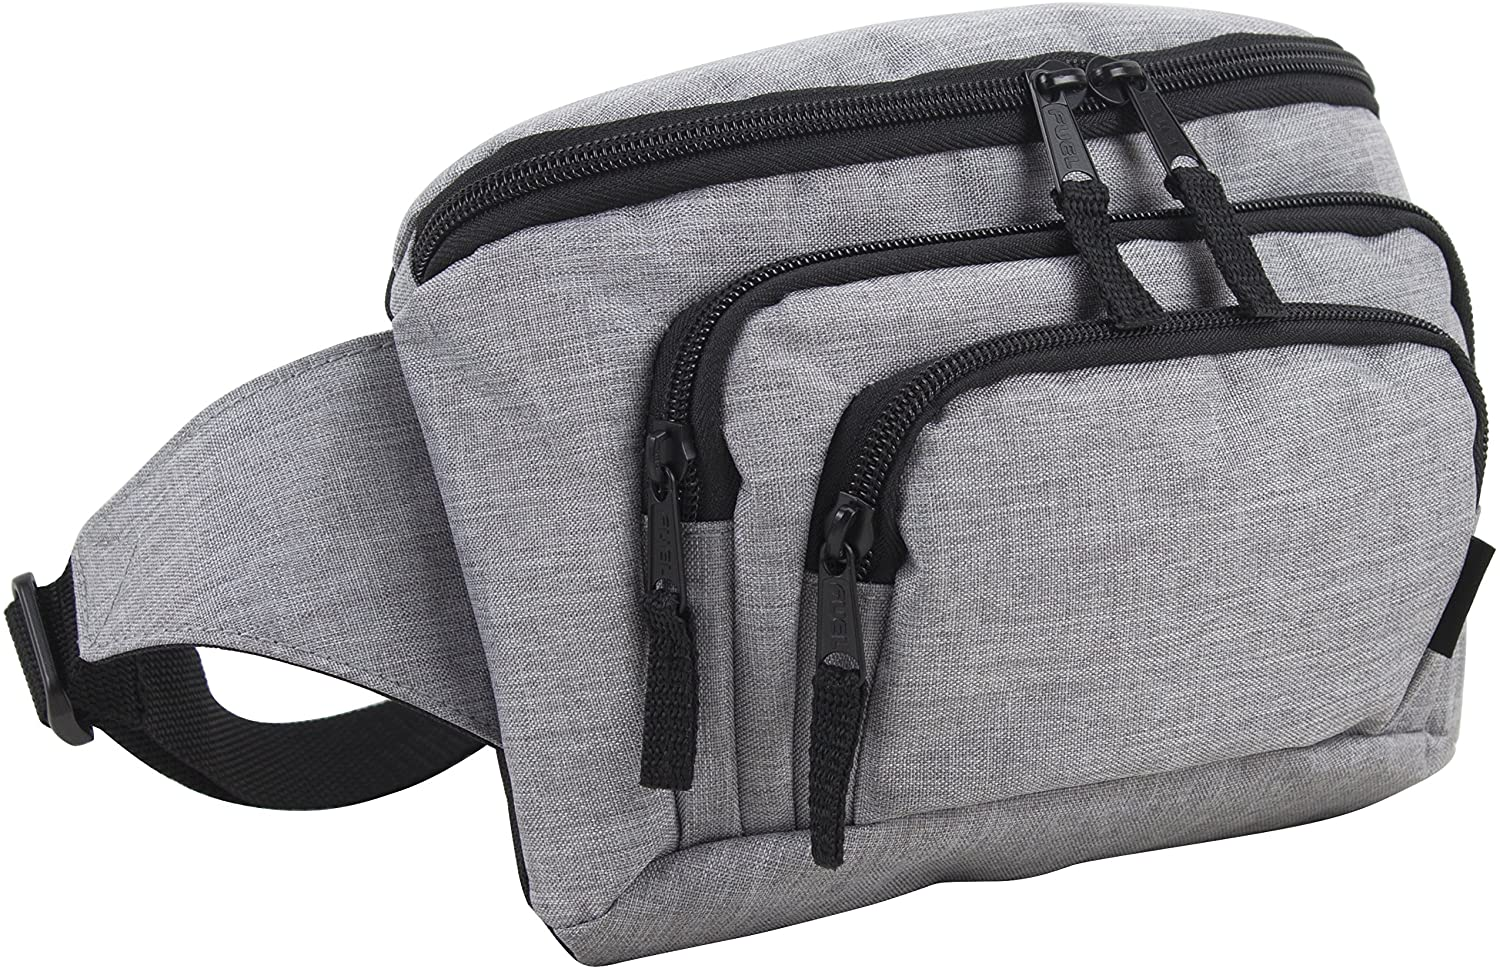 Fuel Signature Triple Pocket High Capacity Belt Bag, Fanny Pack (Expandability Min. 34 In - Max. 48 In) - Gray Chambray